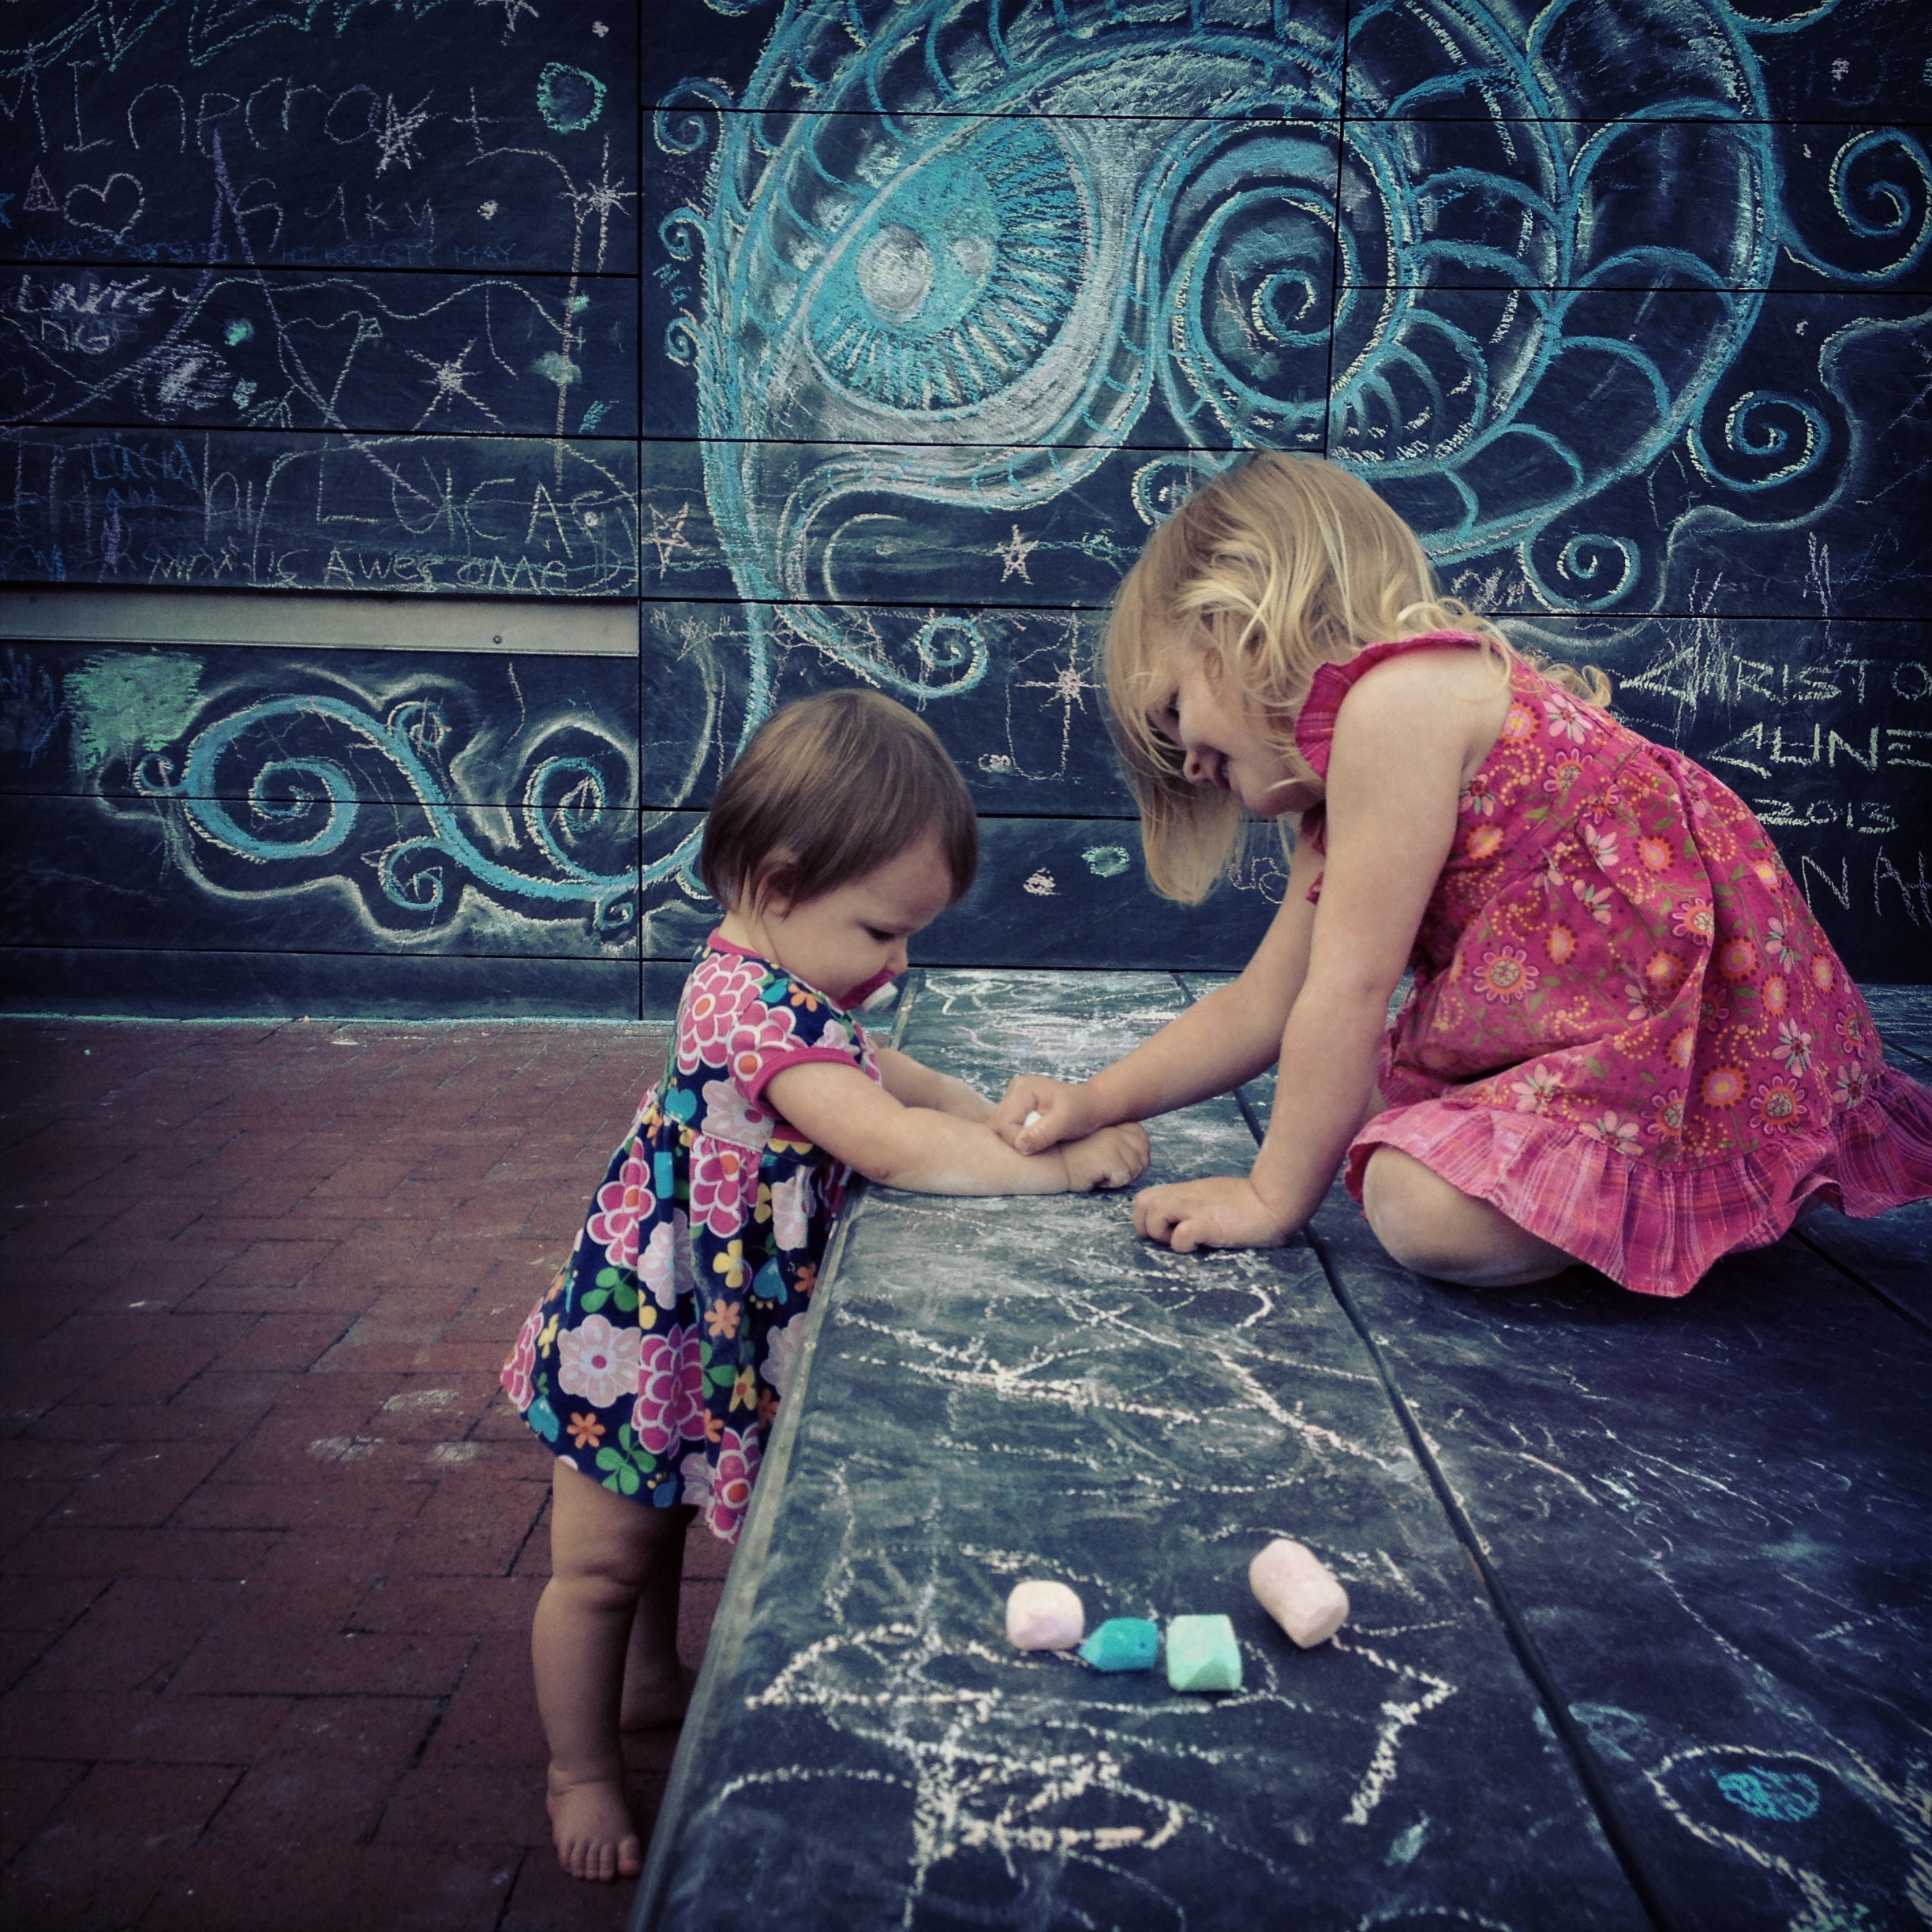 The chalk wall on the Downtown Mall in Charlottesville. This photo was taken a few years ago, but it is just blocks from where tragedy struck.